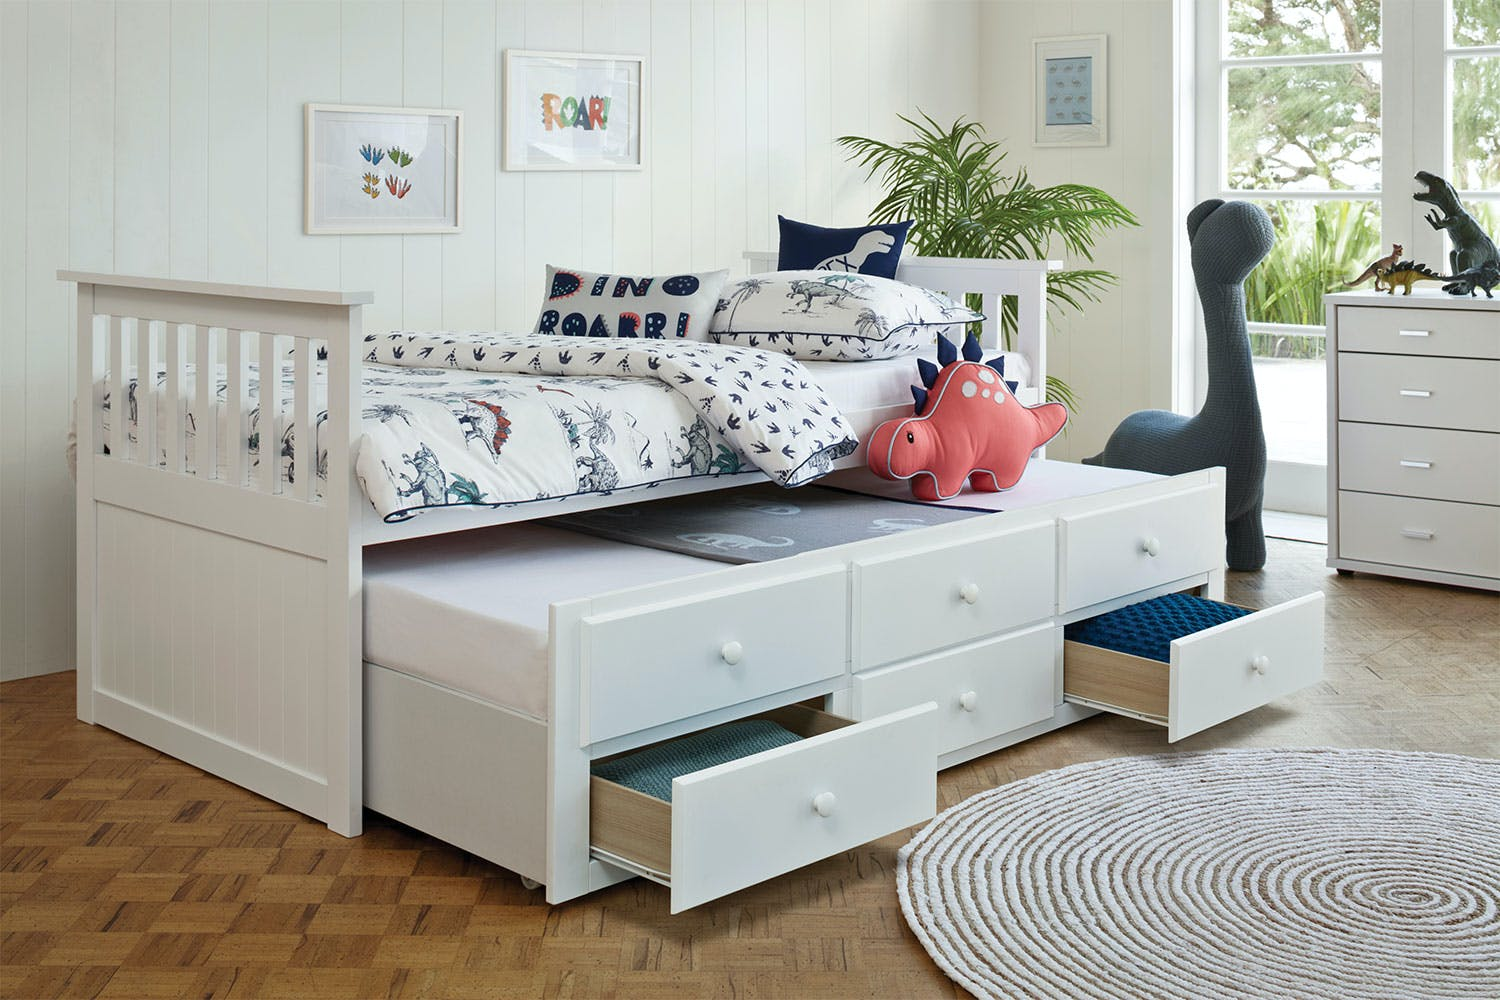 Bailey Captain S Single Bed Frame With Trundle By John Young Furniture Harvey Norman New Zealand